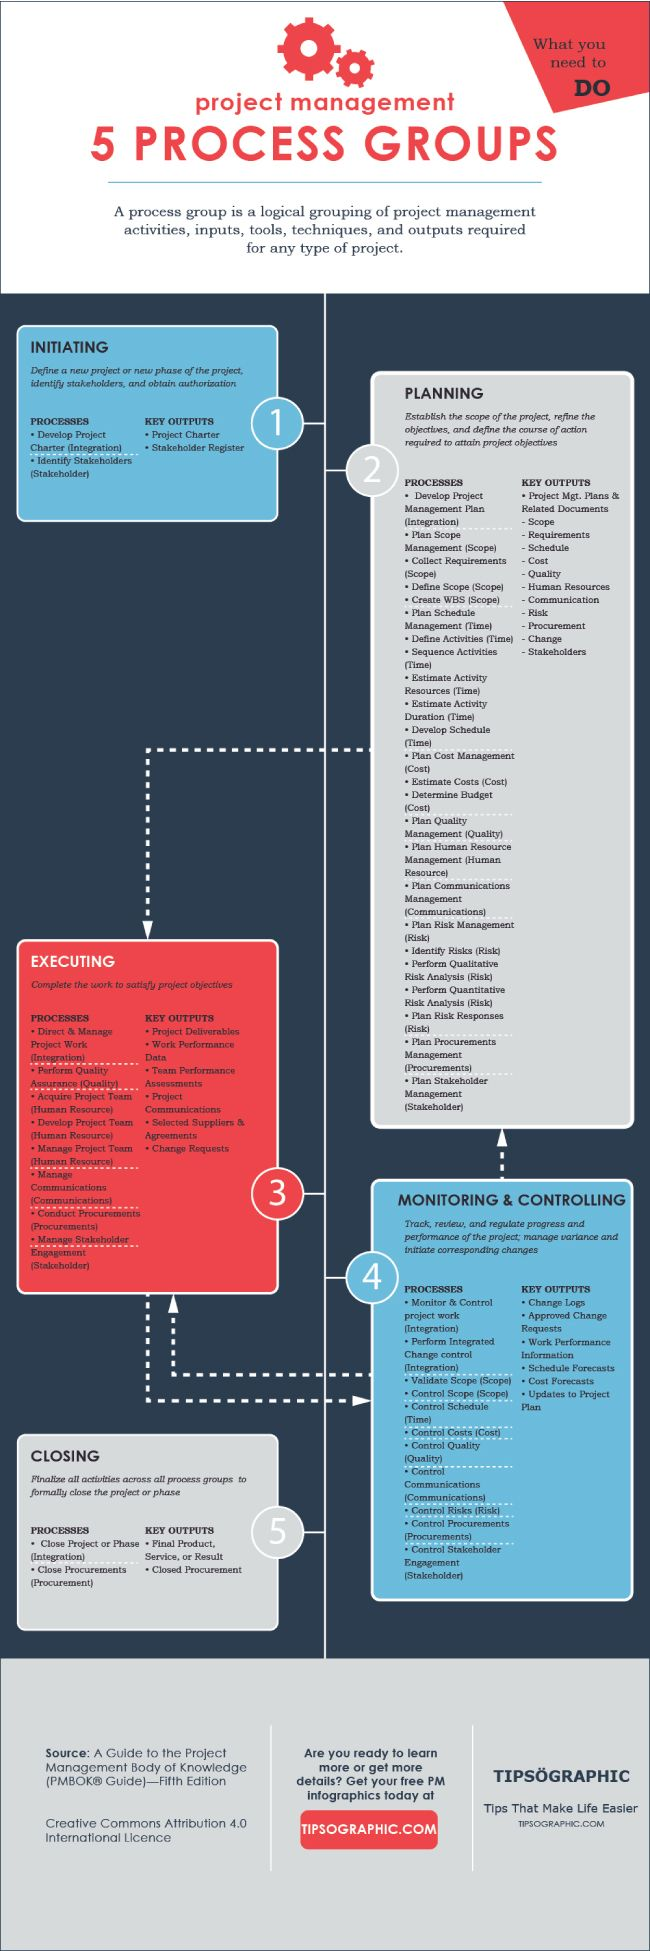 Image titled Project Management Process Groups 101